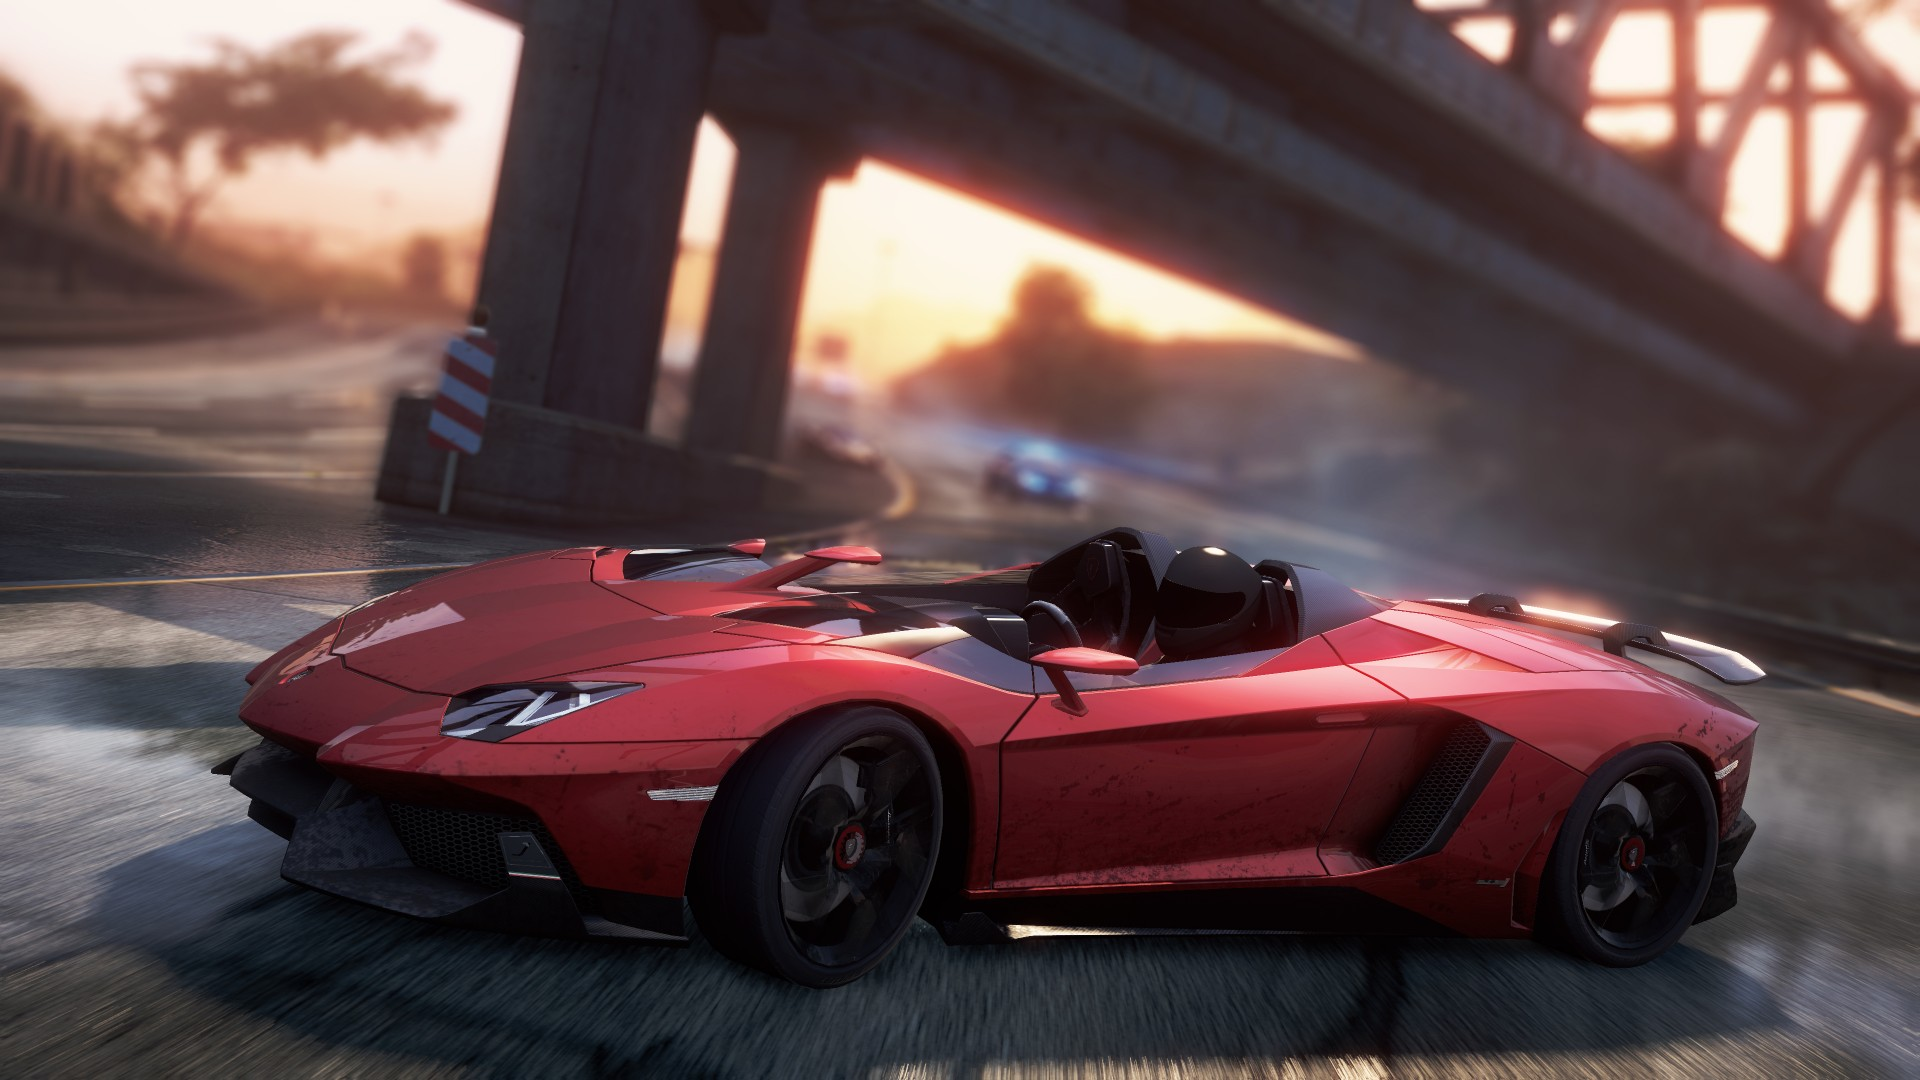 Sggaminginfo 187 Feel The Speed With Nfs Most Wanted